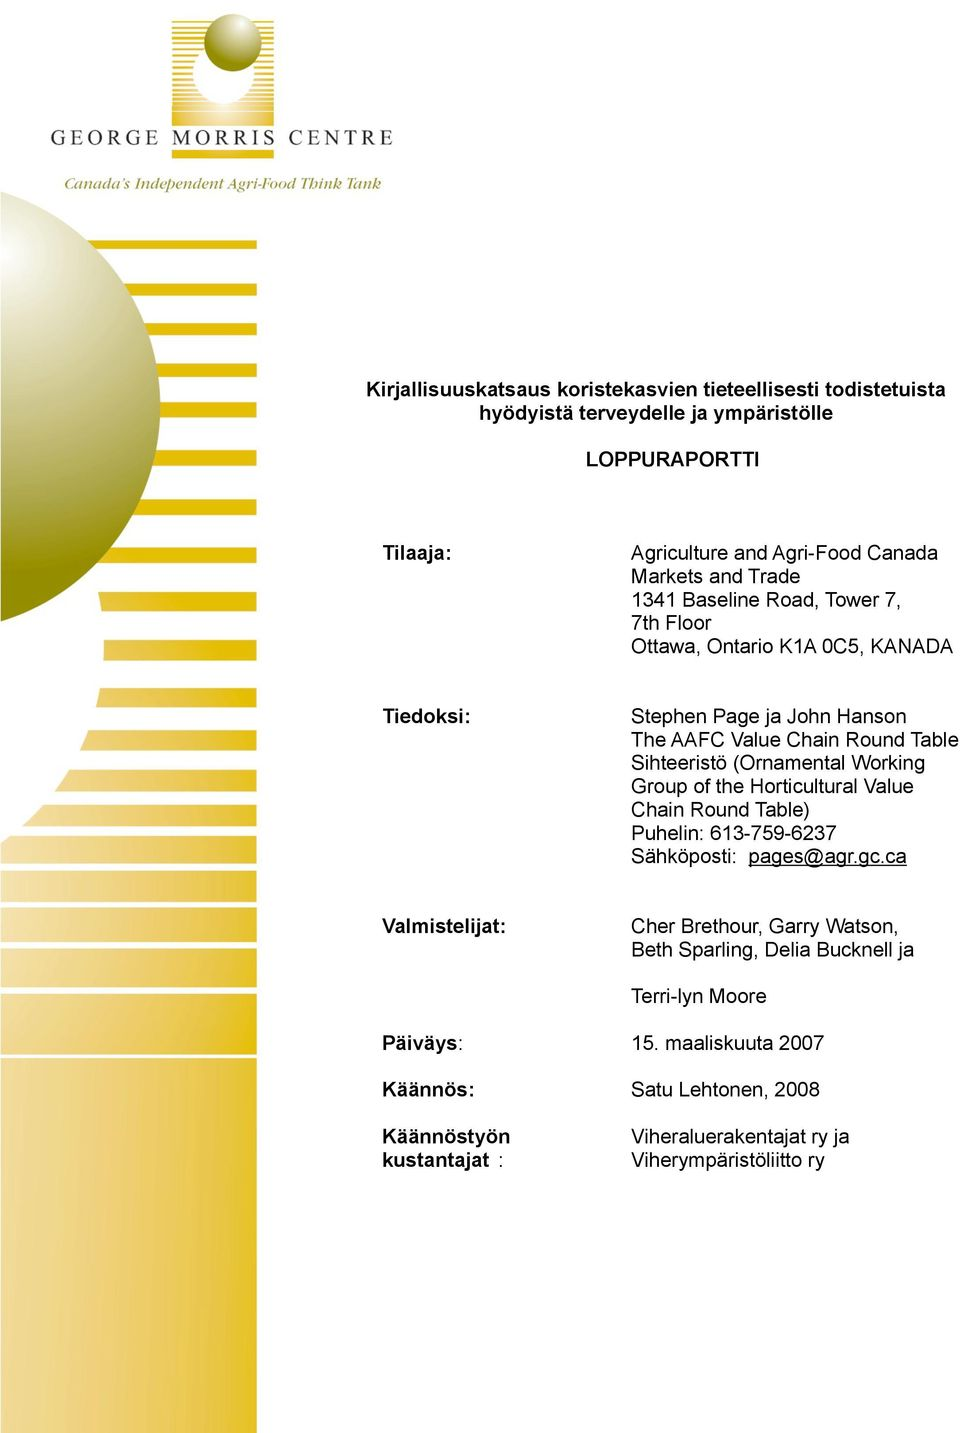 (Ornamental Working Group of the Horticultural Value Chain Round Table) Puhelin: 613-759-6237 Sähköposti: pages@agr.gc.